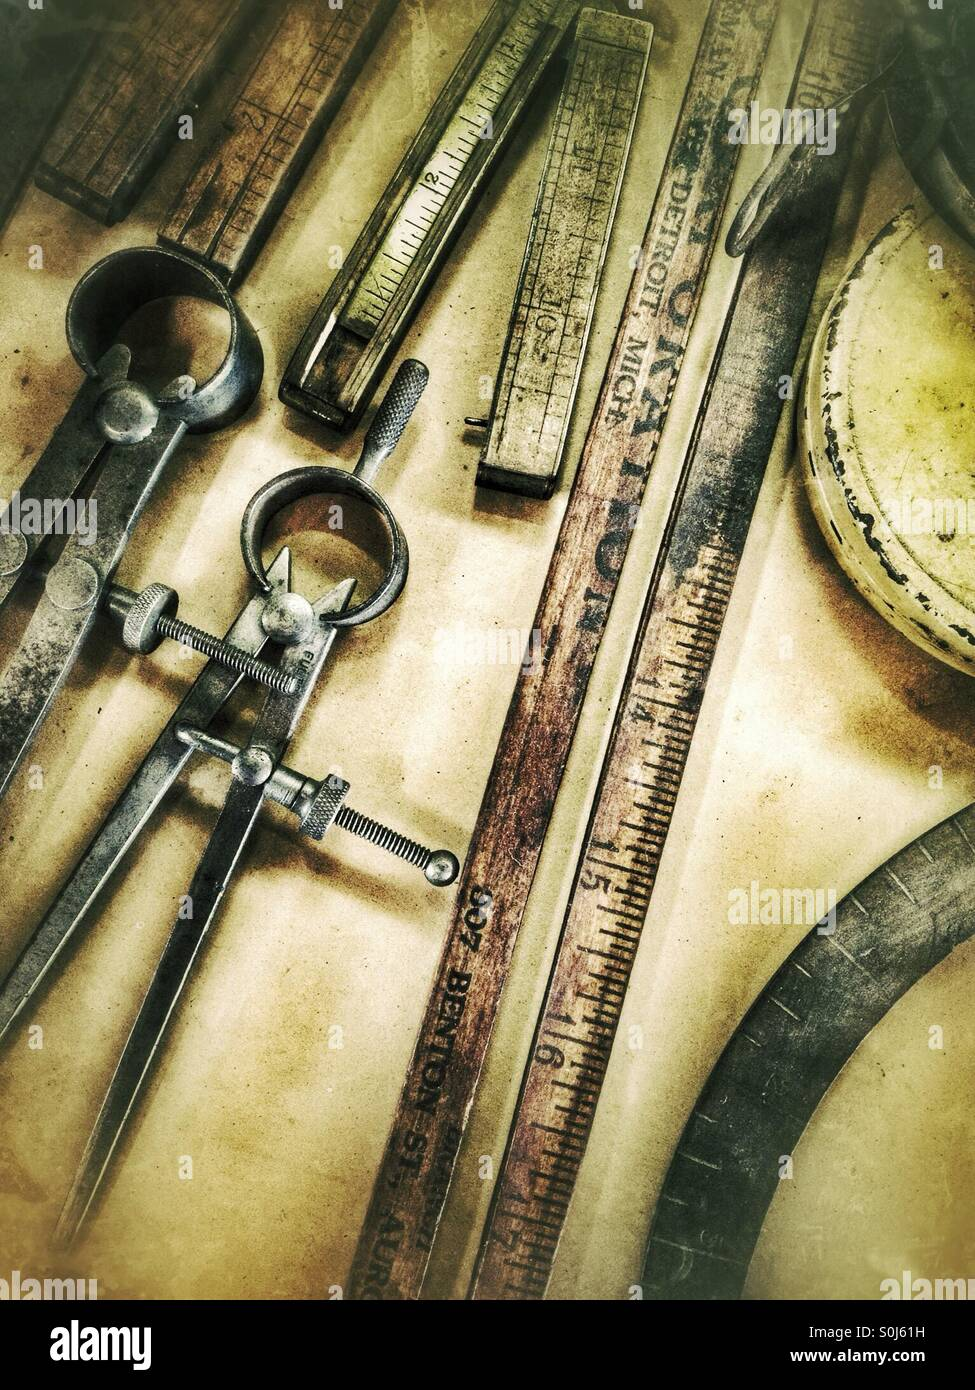 Antique measuring instruments - Stock Image